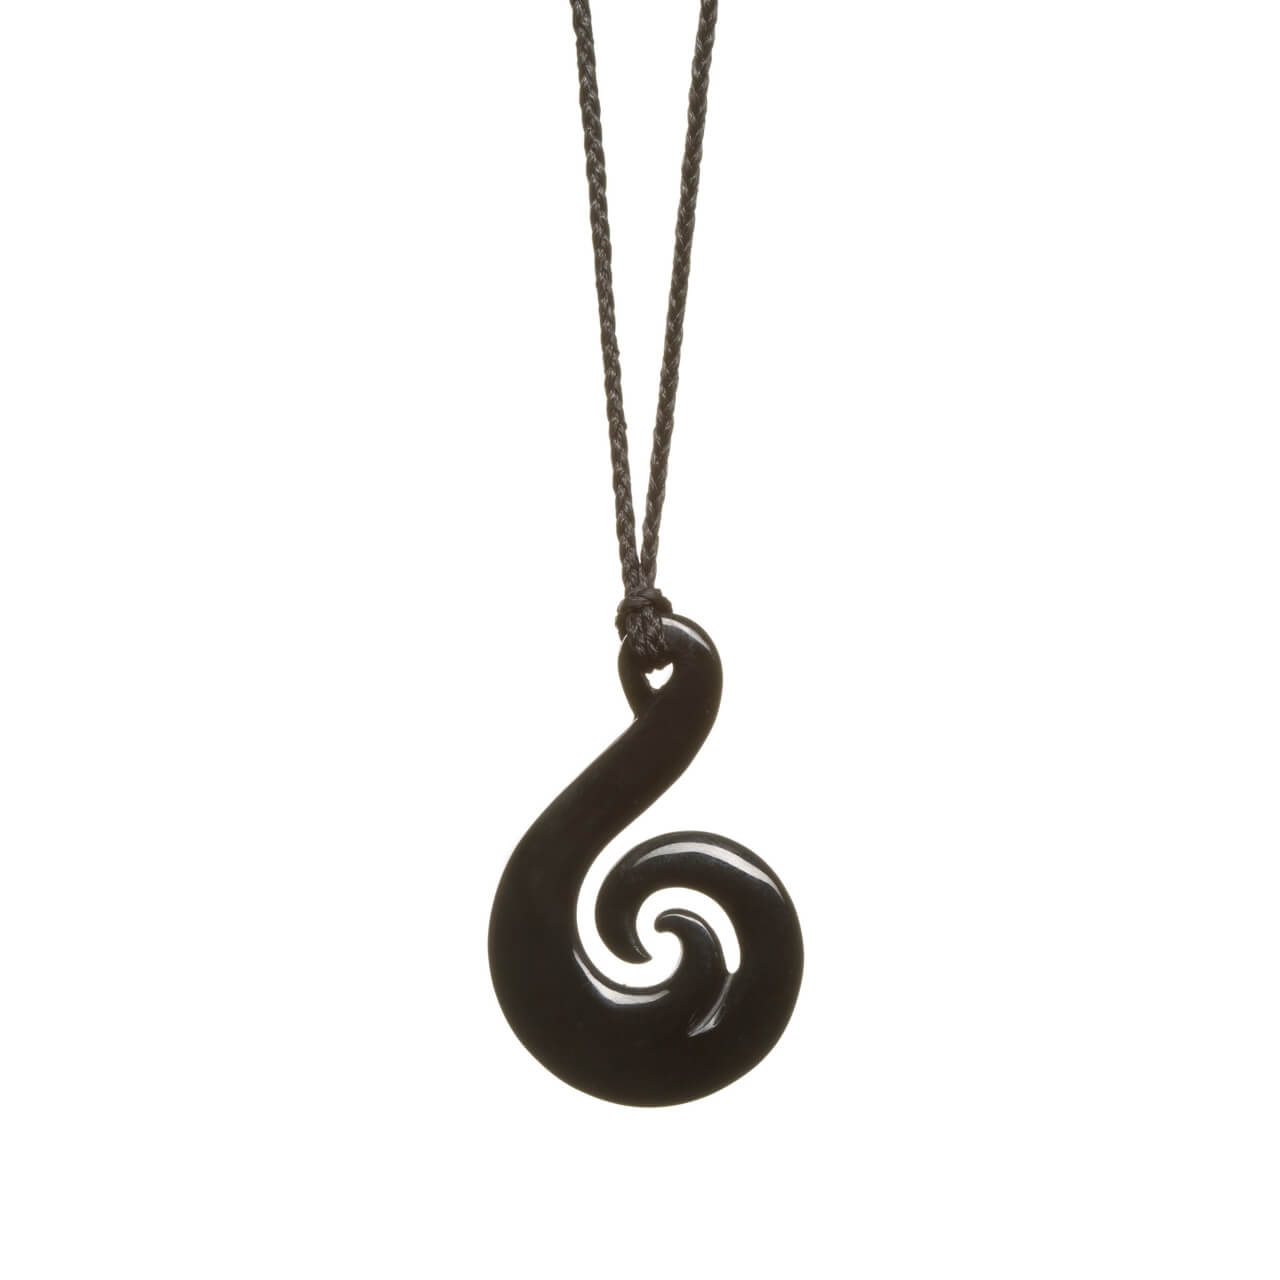 Australian Black Jade Koru Fish Hook Necklace